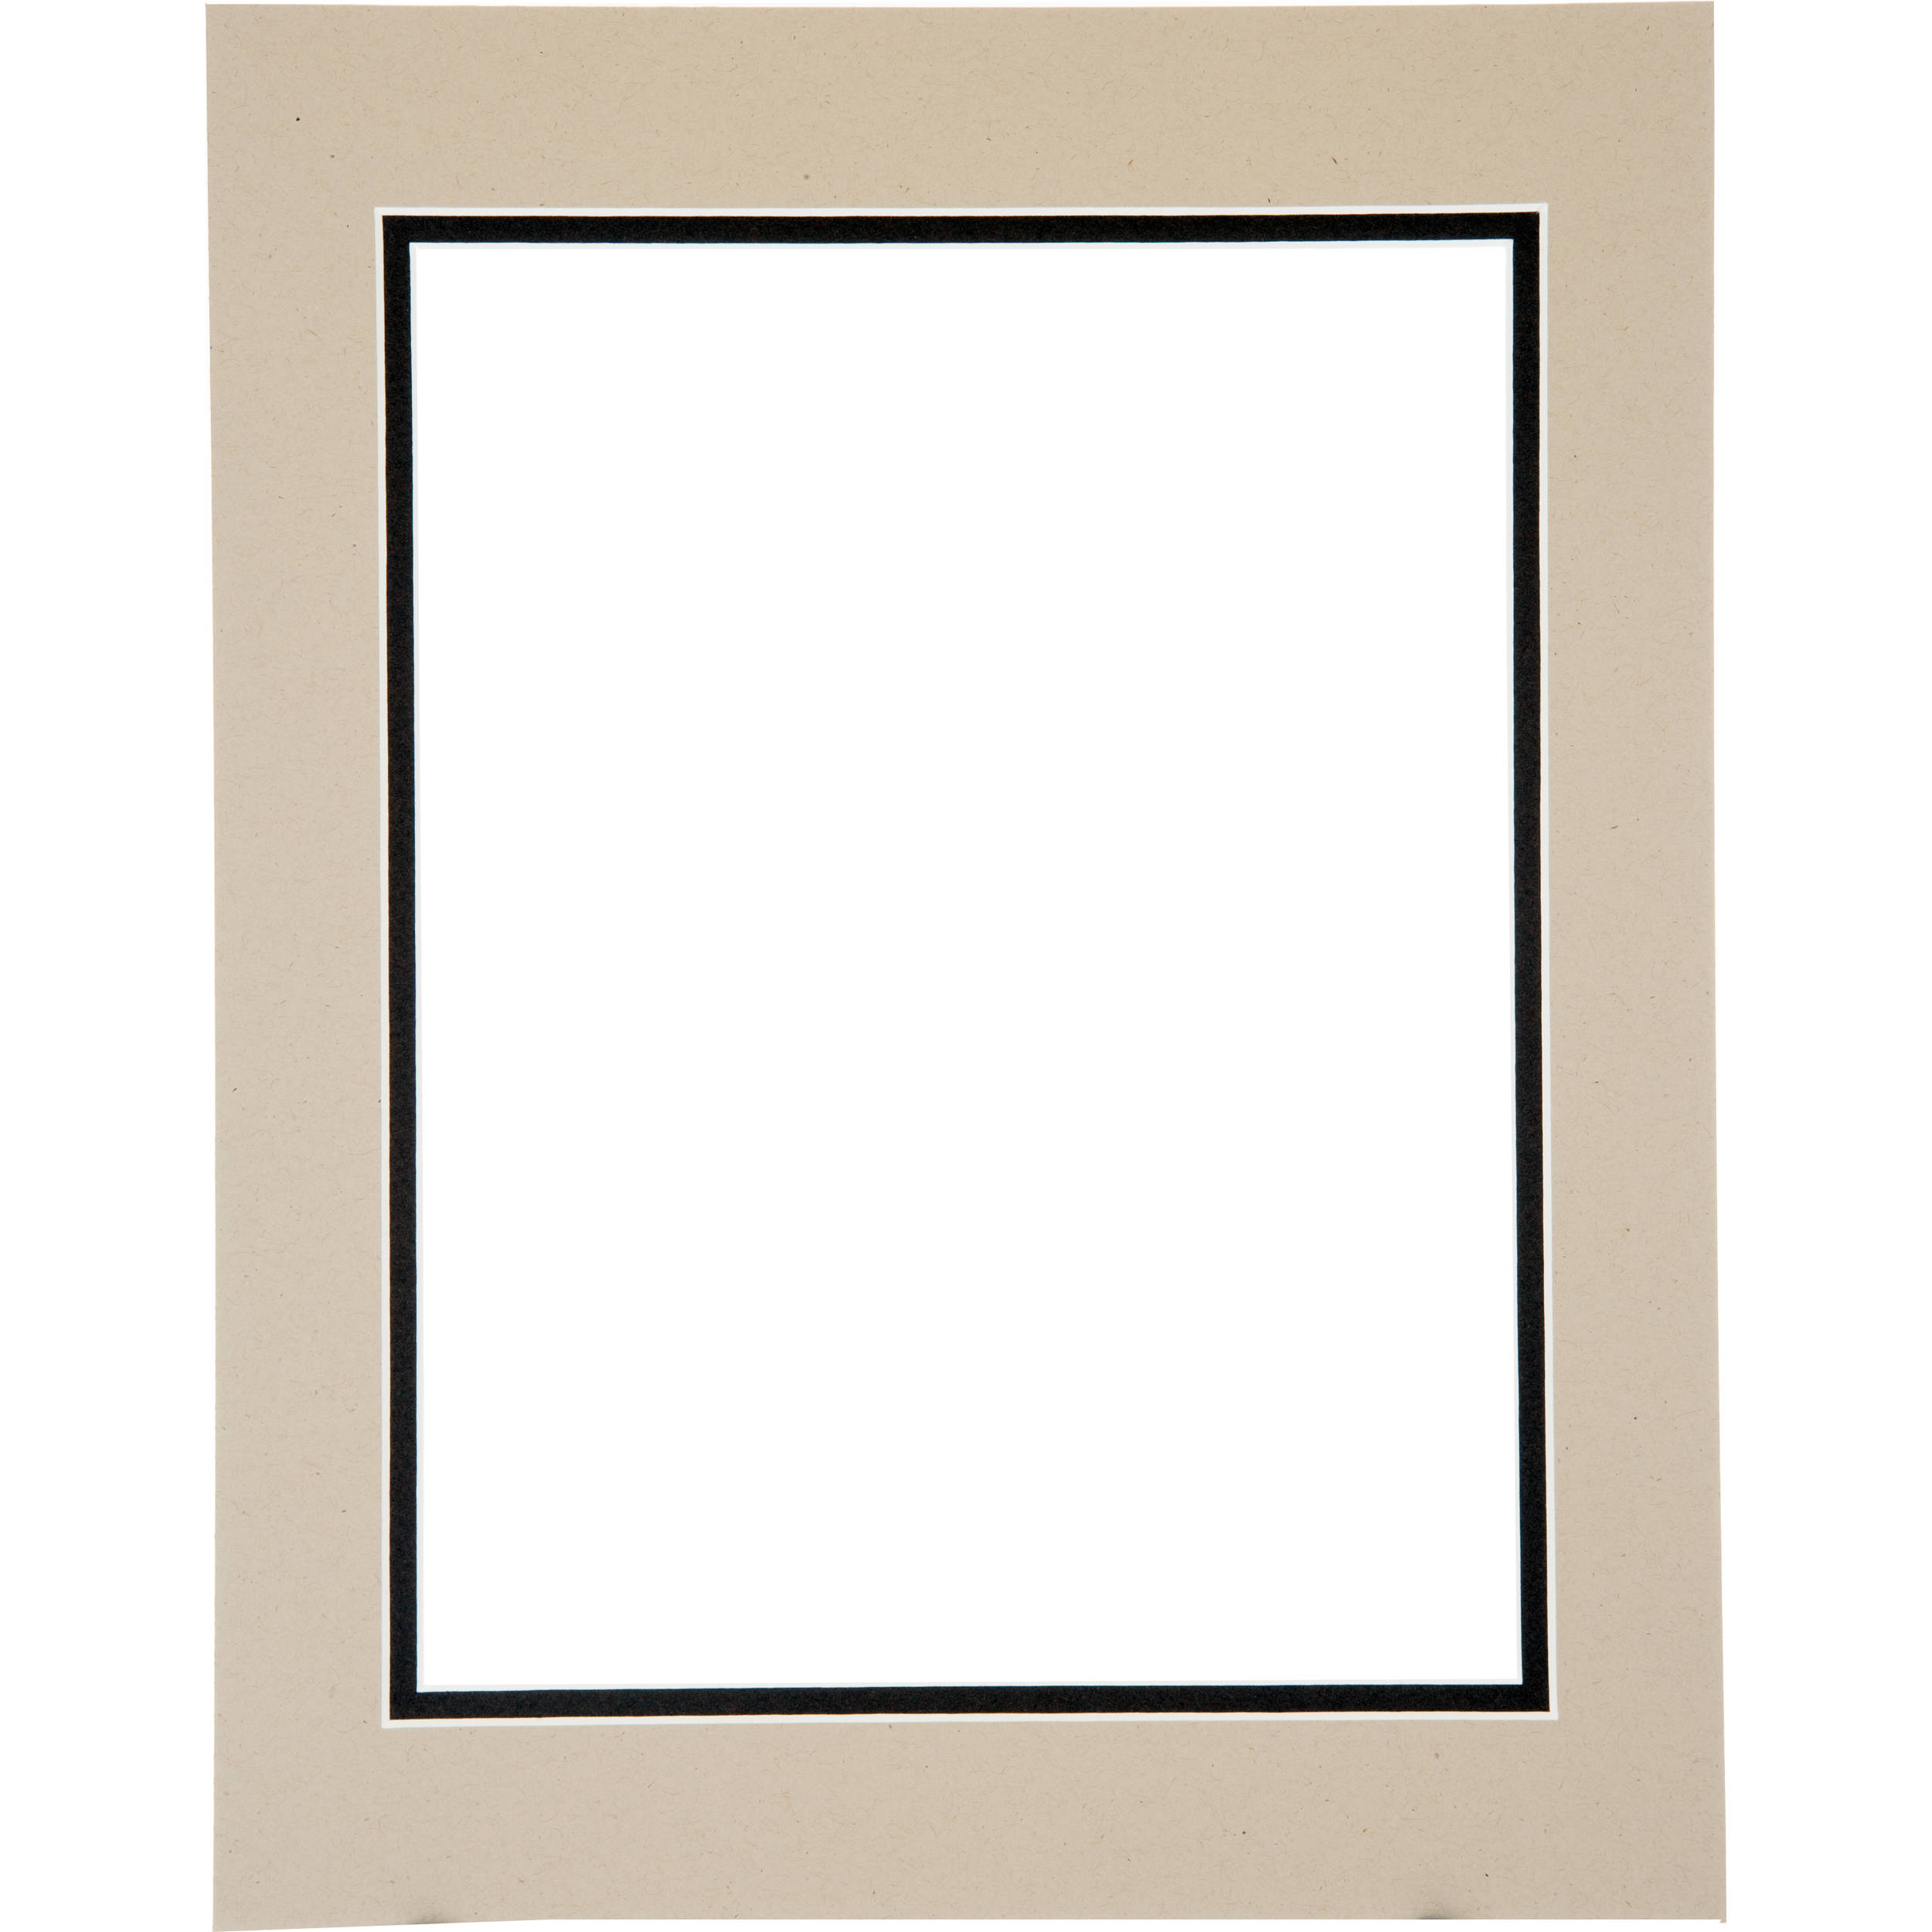 Logan Graphics 11 X 14 Double Mat Frame With 85 M6033 49